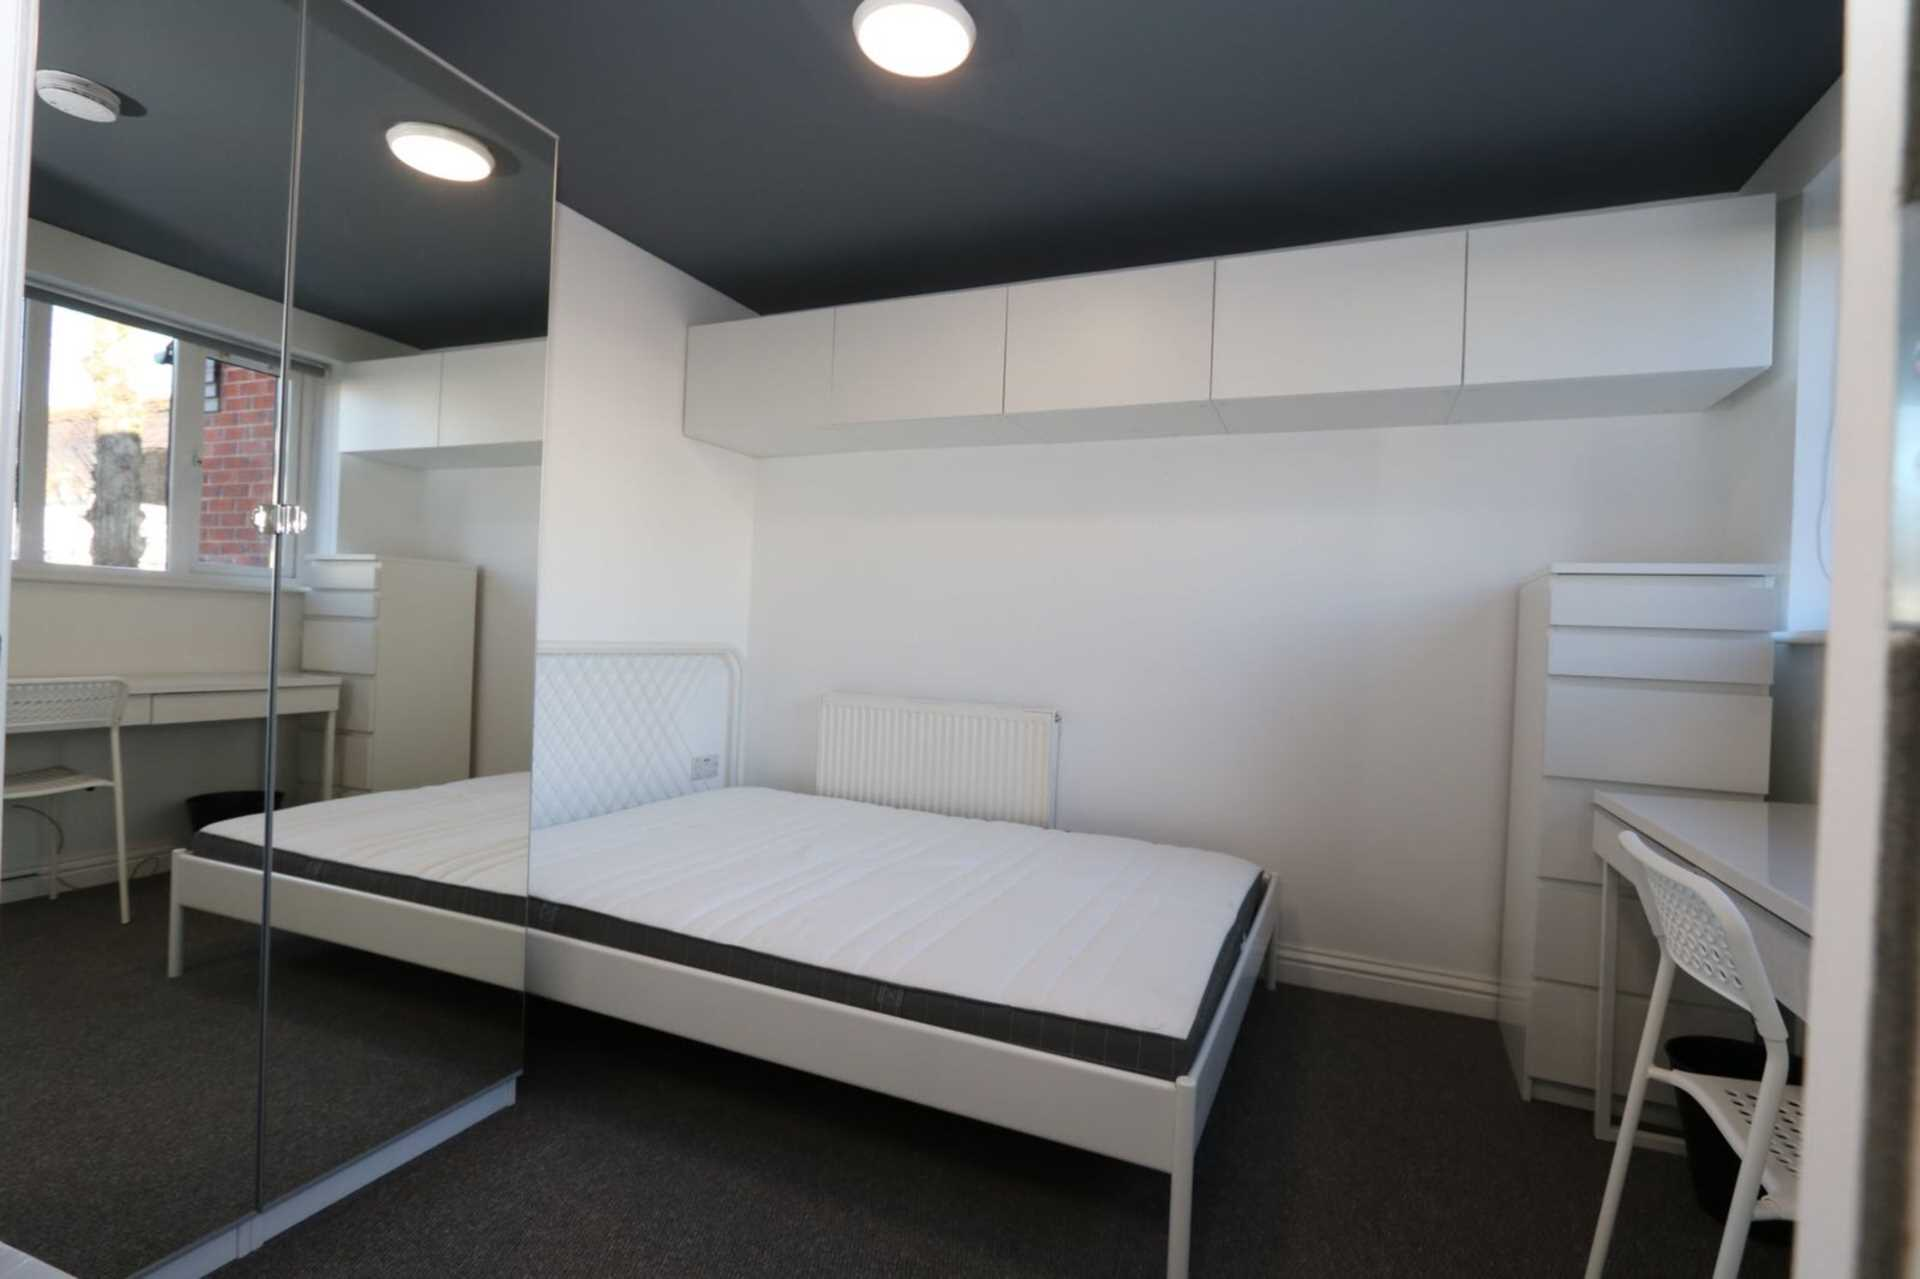 Spon End - 3 bedroom 3 bathroom, student home fully furnished, WIFI & bills included - NO FEES, Image 7